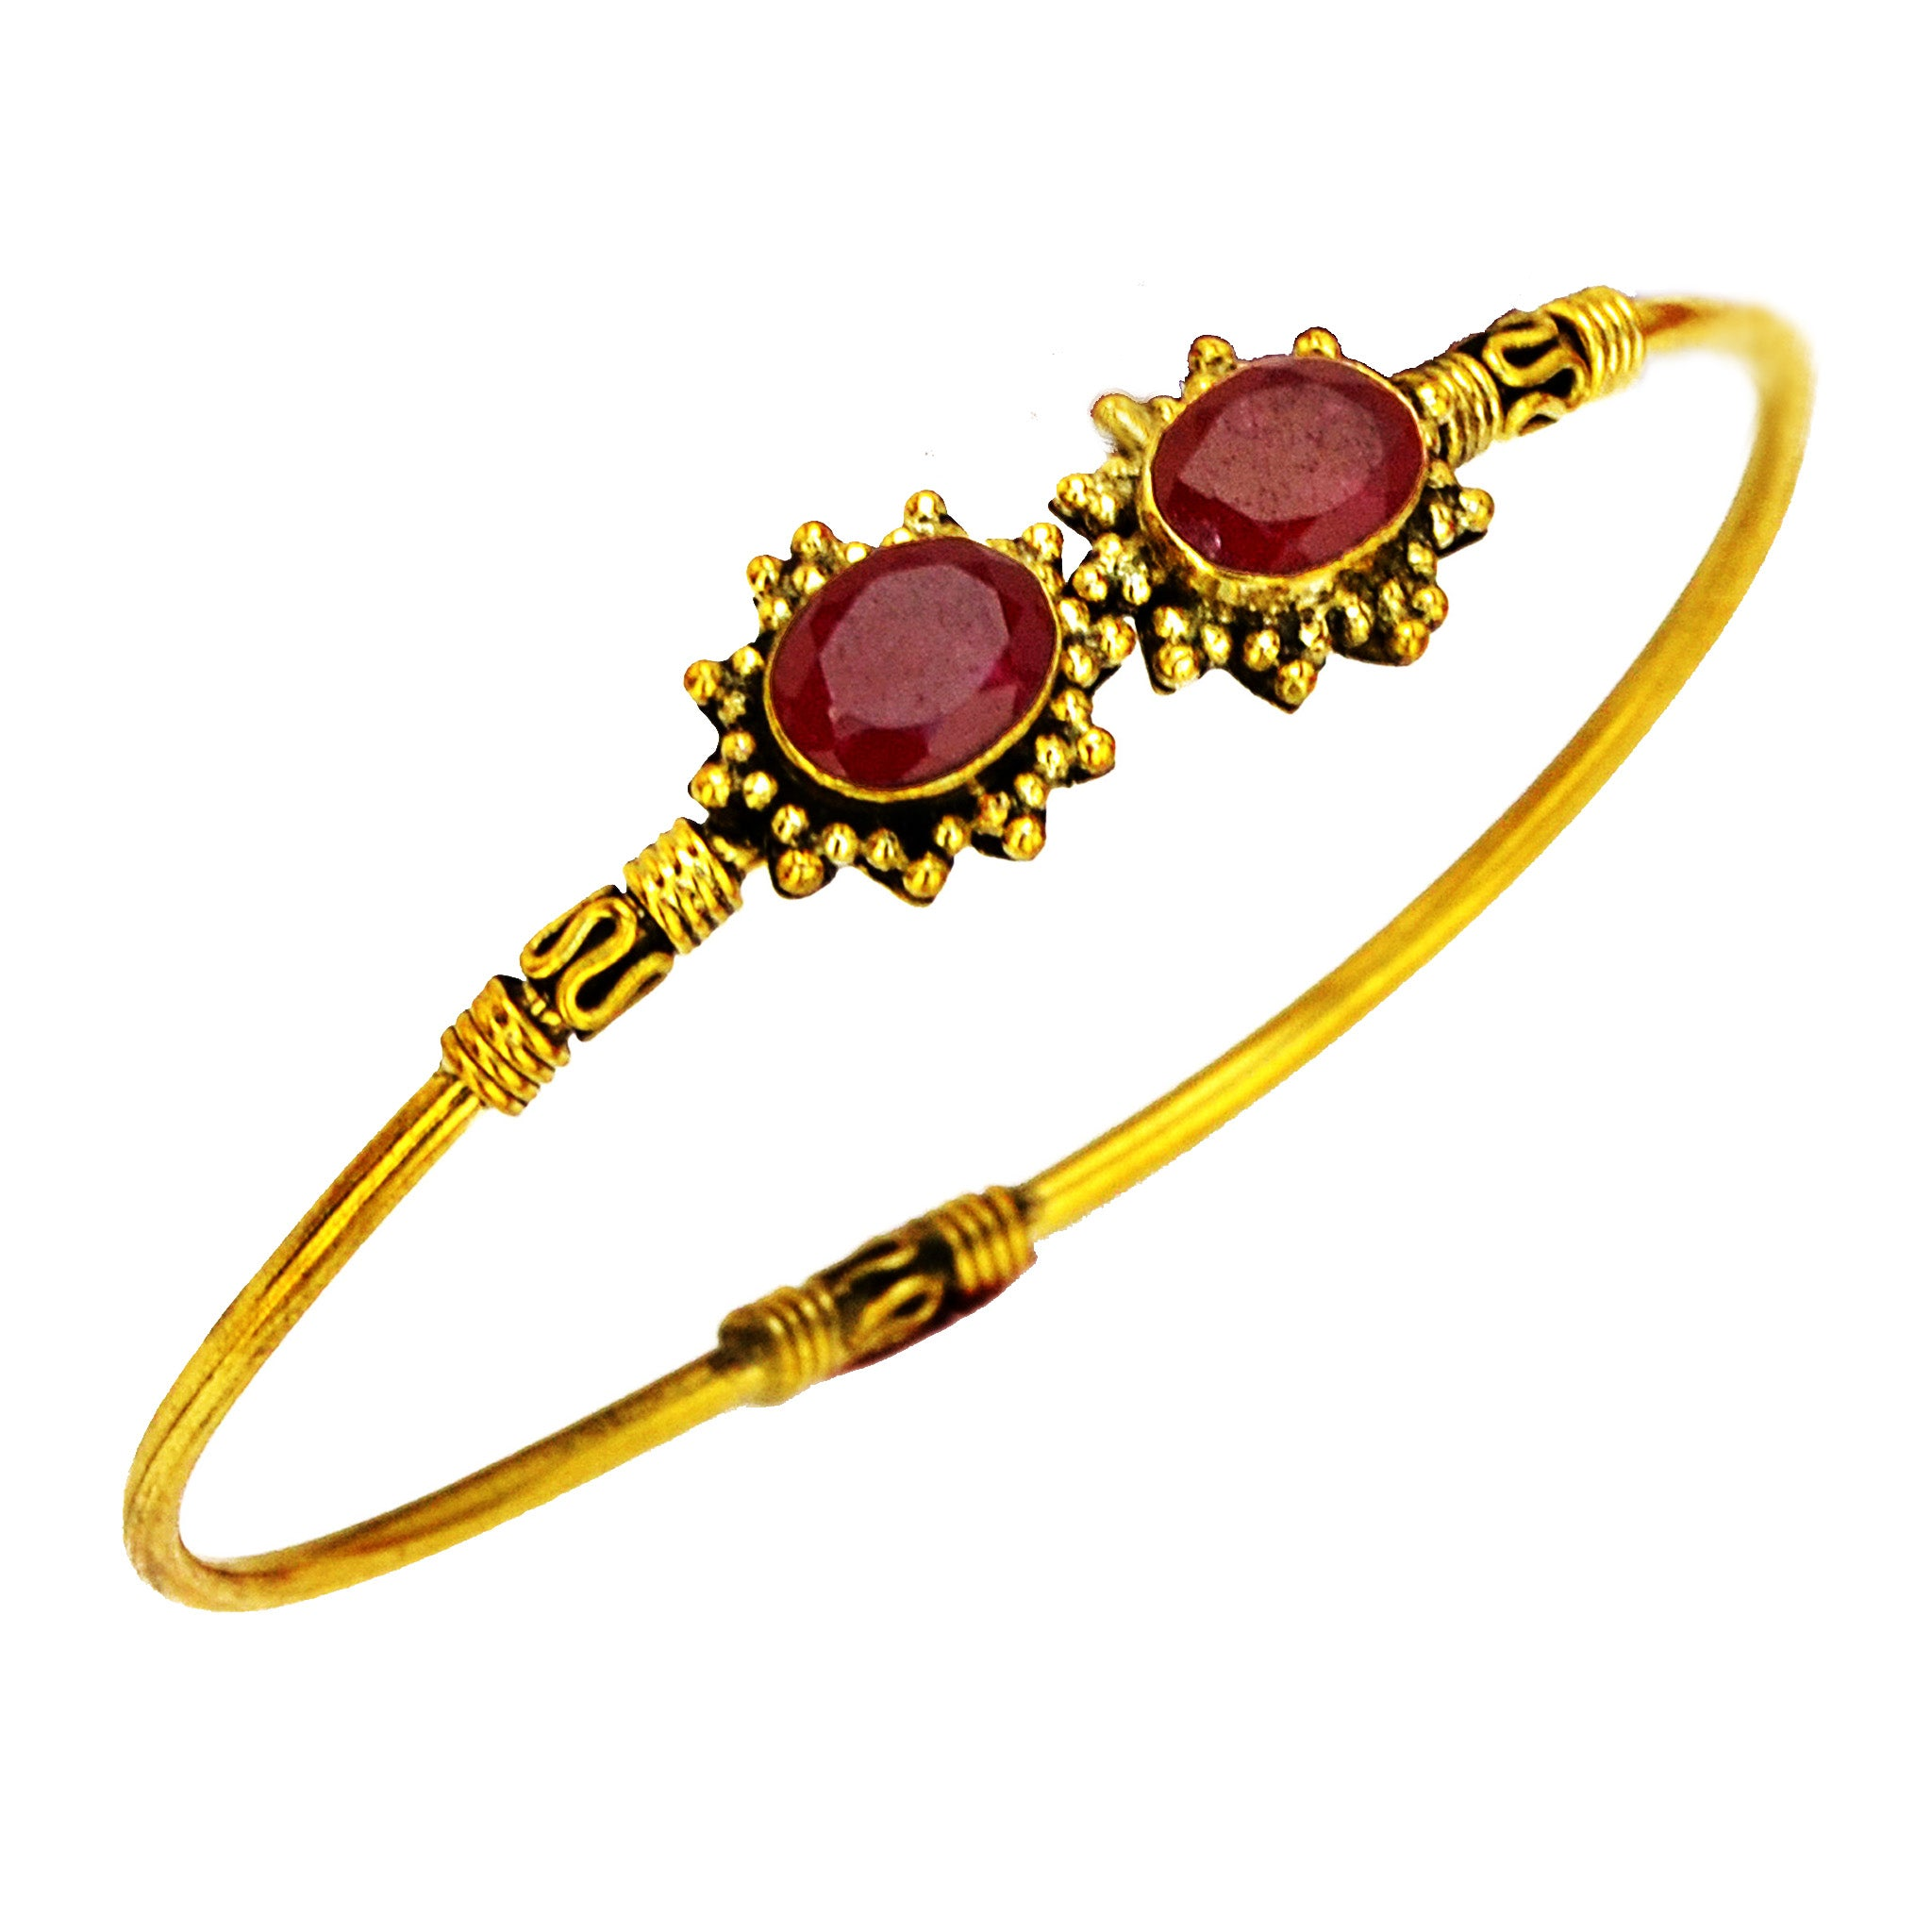 bangle carnelian jewelry rajhastani brass stone boho gold with gemstone red indian bracelet gypsy rajasthani products